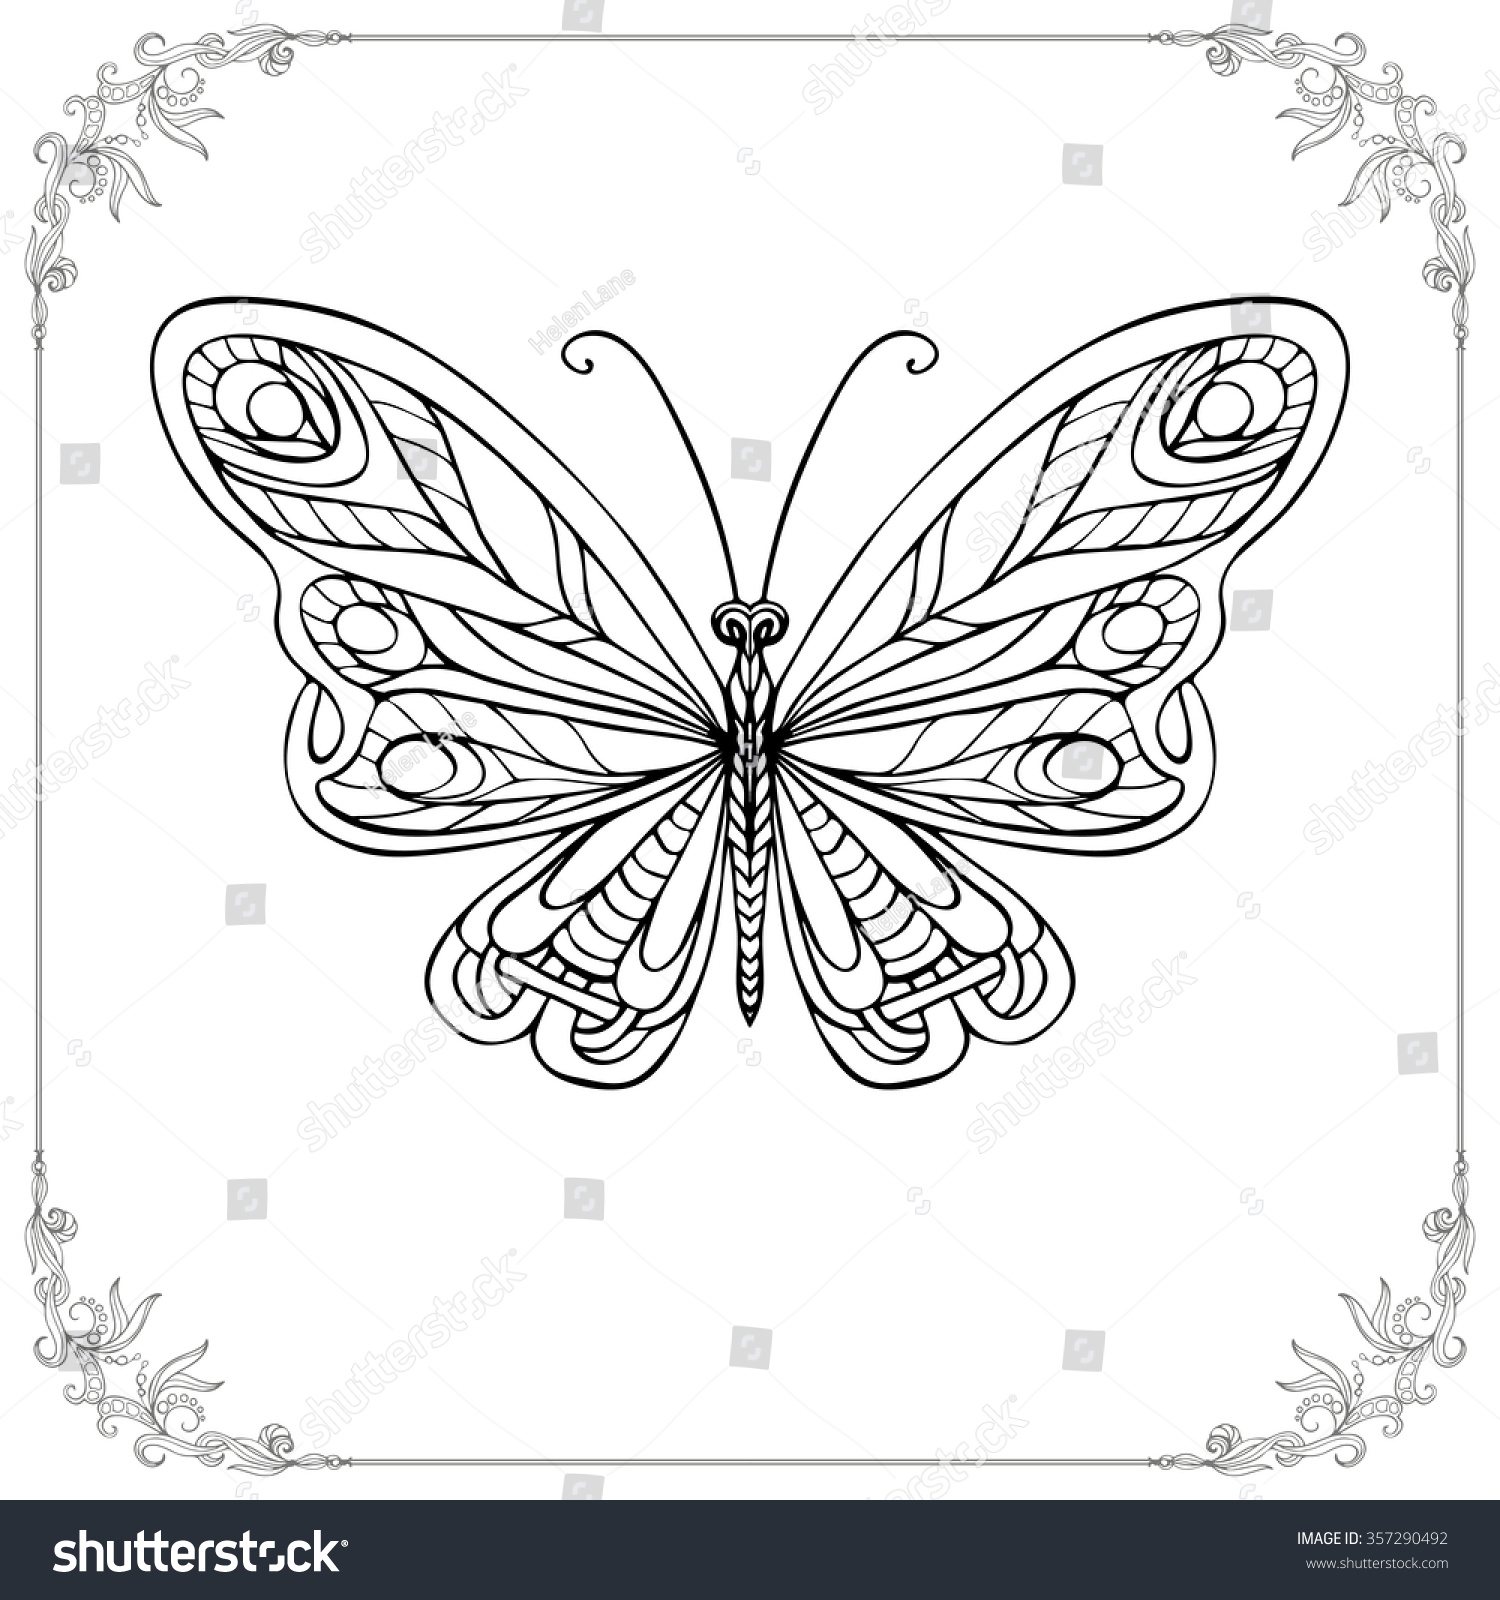 Coloring Book Adult Older Children Coloring Stock Vector 357290492 ...